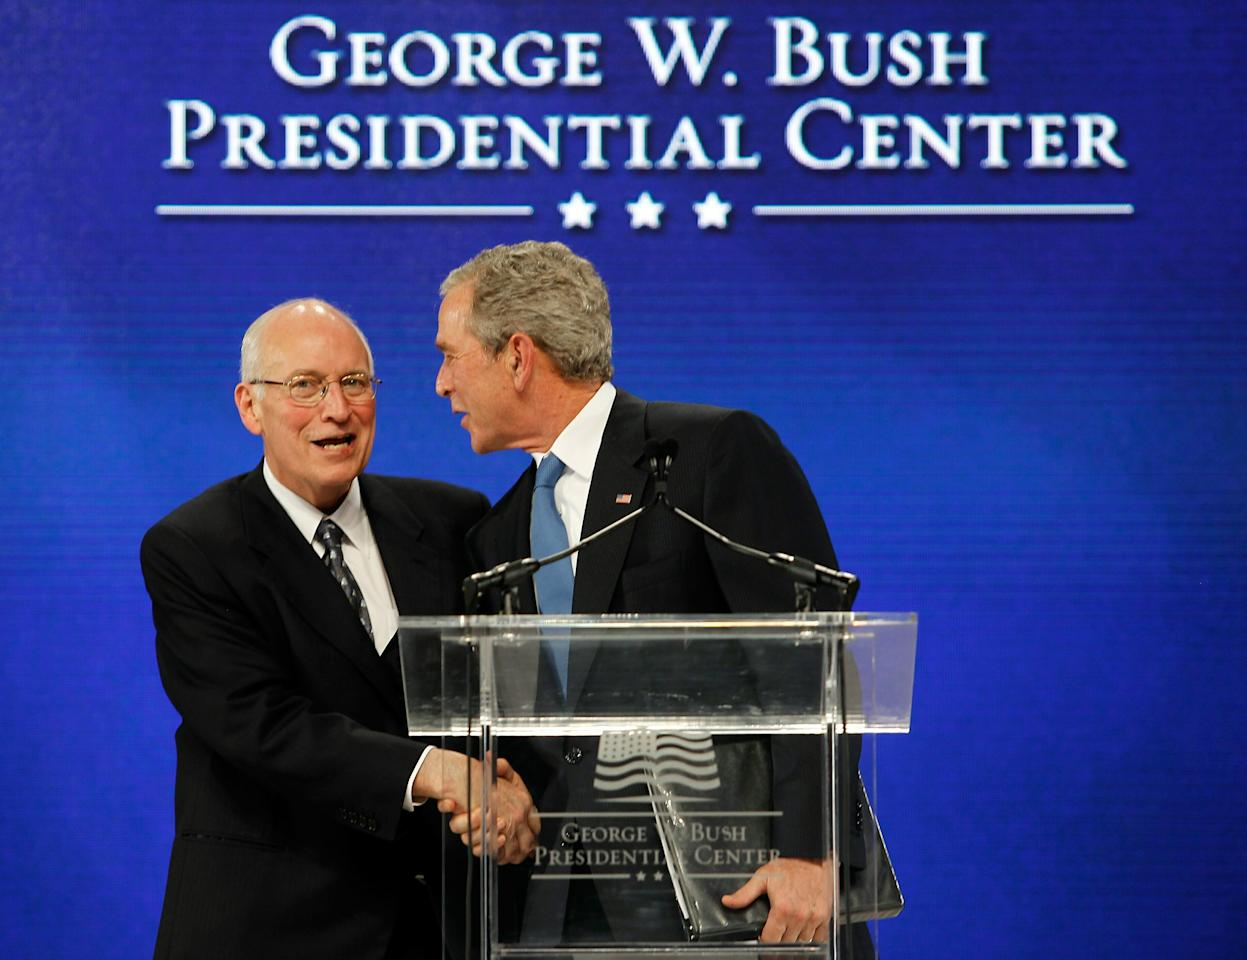 DALLAS - NOVEMBER 16:  Former U.S. Vice President Dick Cheney (L) introduces Former U.S. President George W. Bush during the George W. Bush Presidential Center groundbreaking ceremony on November 16, 2010 in Dallas, Texas. The George W. Bush Presidential Center is a state-of-the-art  250 million dollar complex that will include Former U.S. President George W. Bush's presidential library and museum, the George W. Bush Policy Institute, and the offices of the George W. Bush Foundation.  (Photo by Tom Pennington/Getty Images)